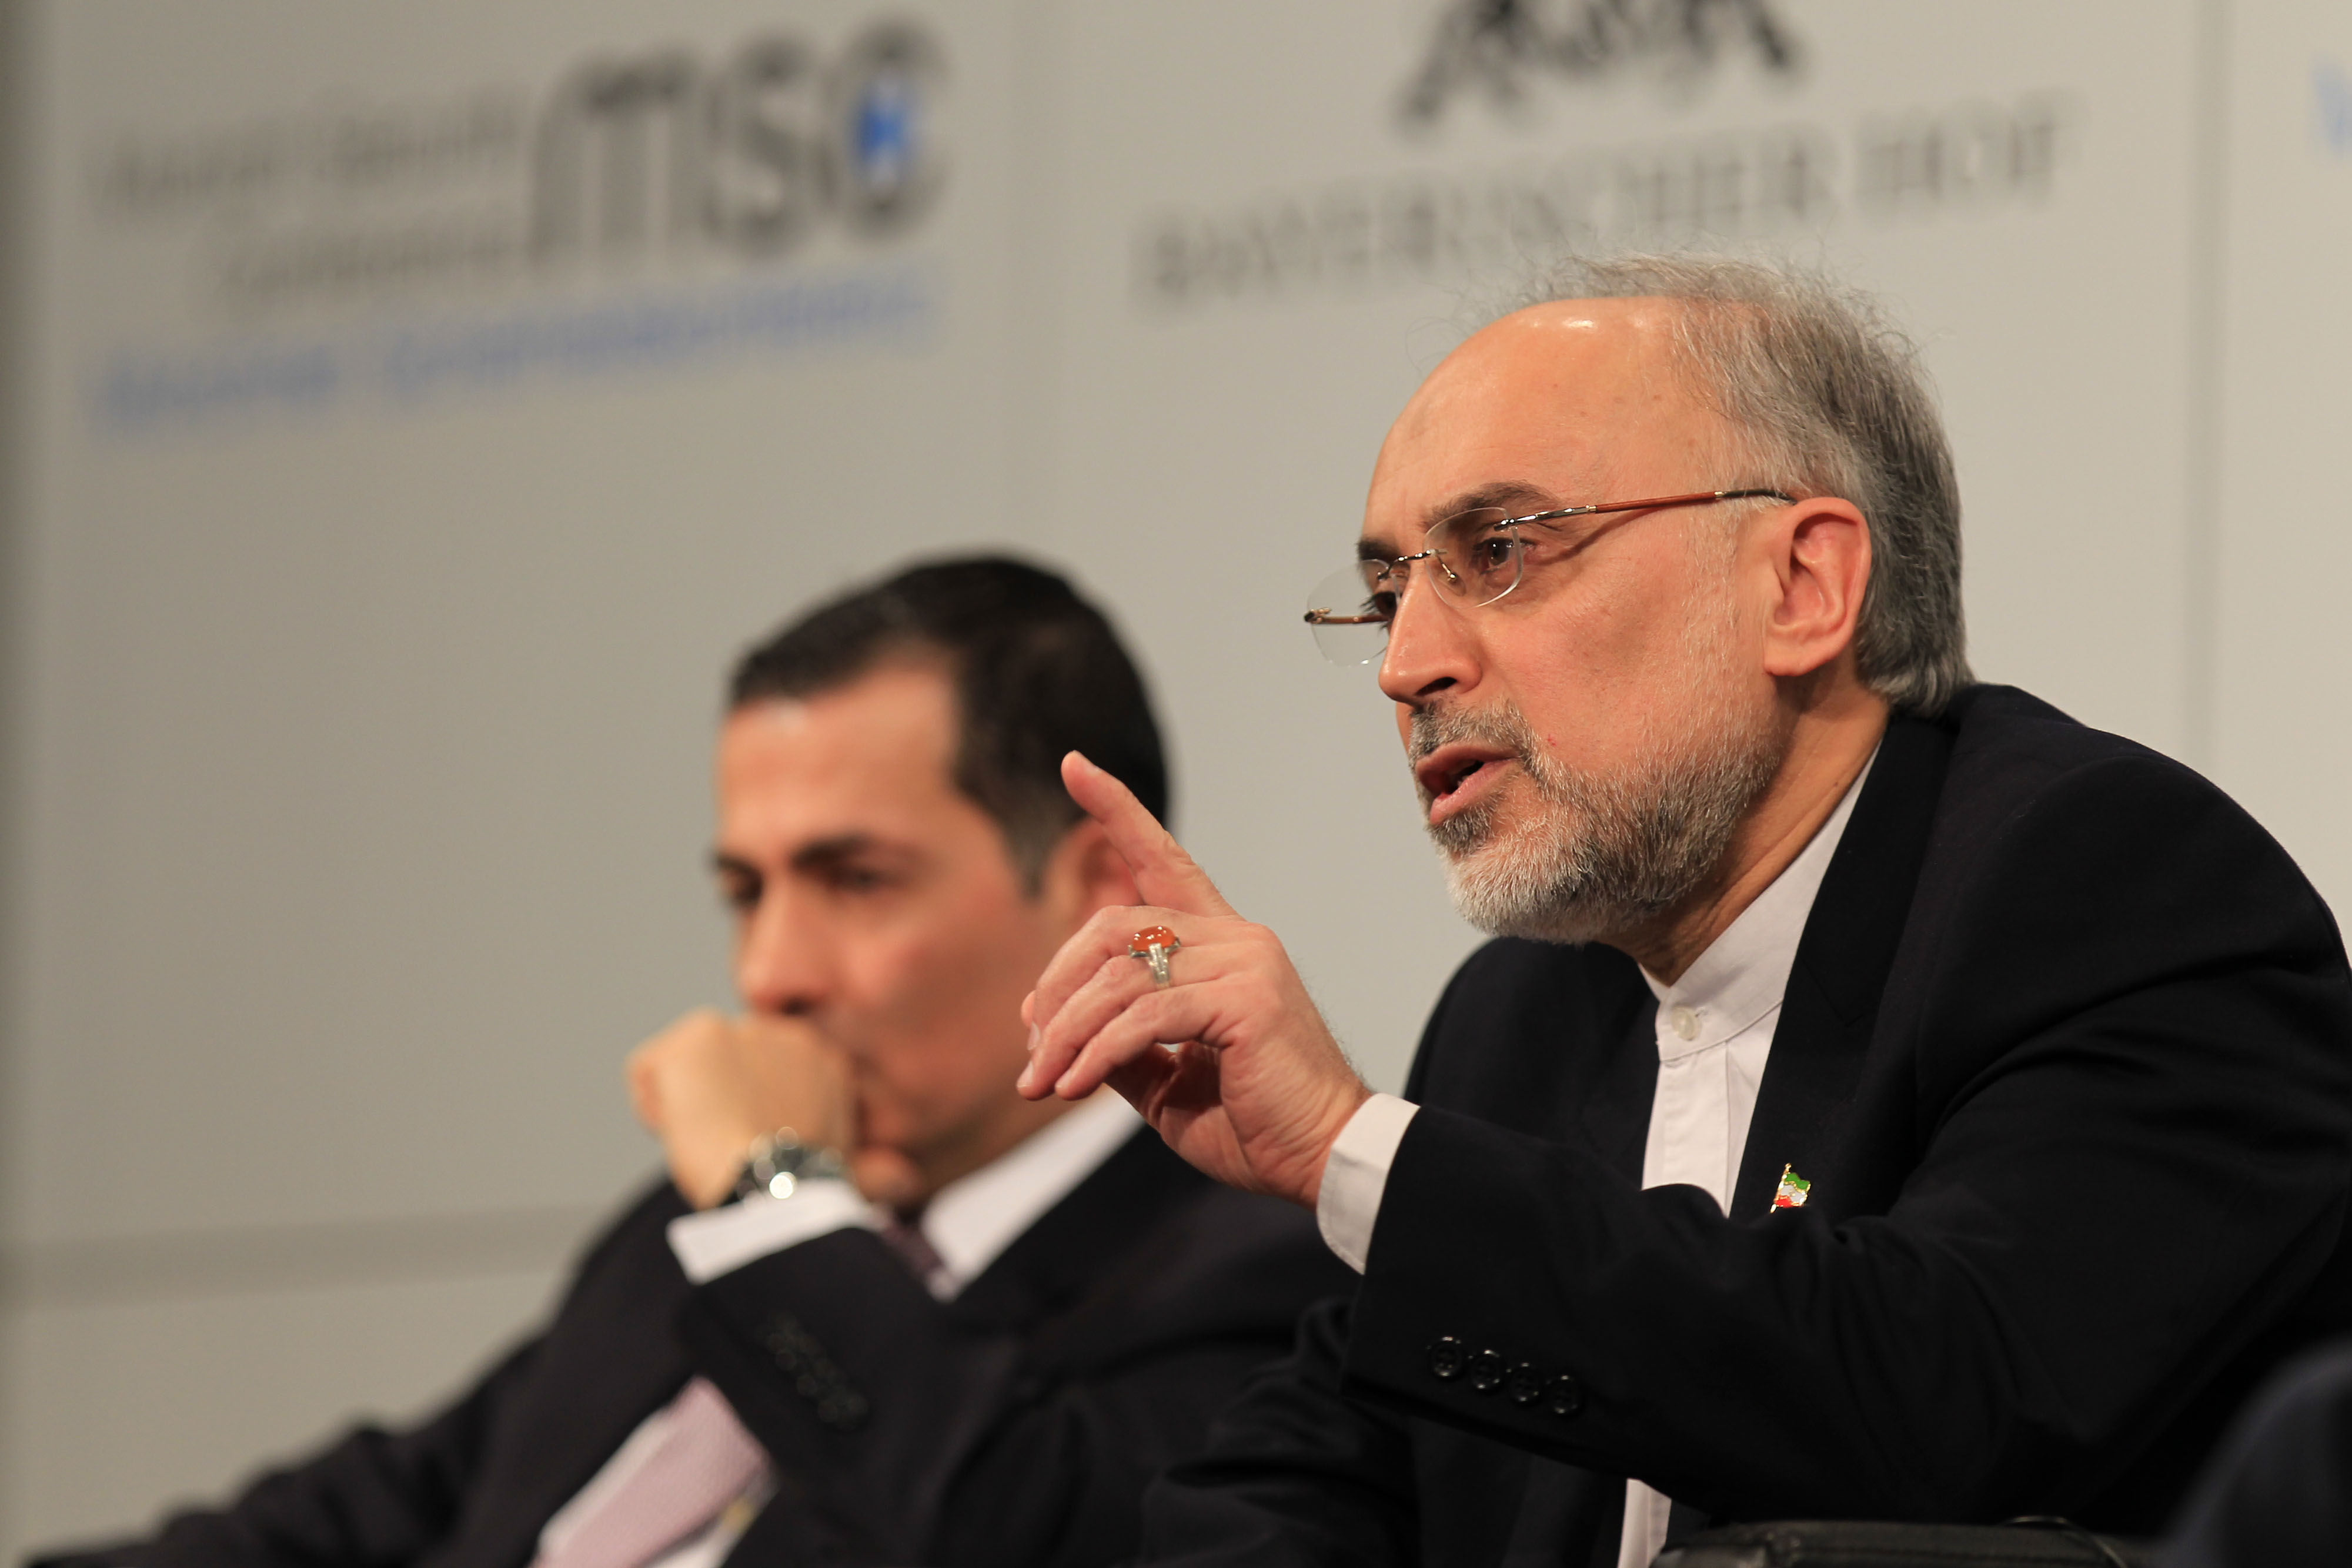 MSC_2013_Wuest_Panel10Uhr_Salehi_0014